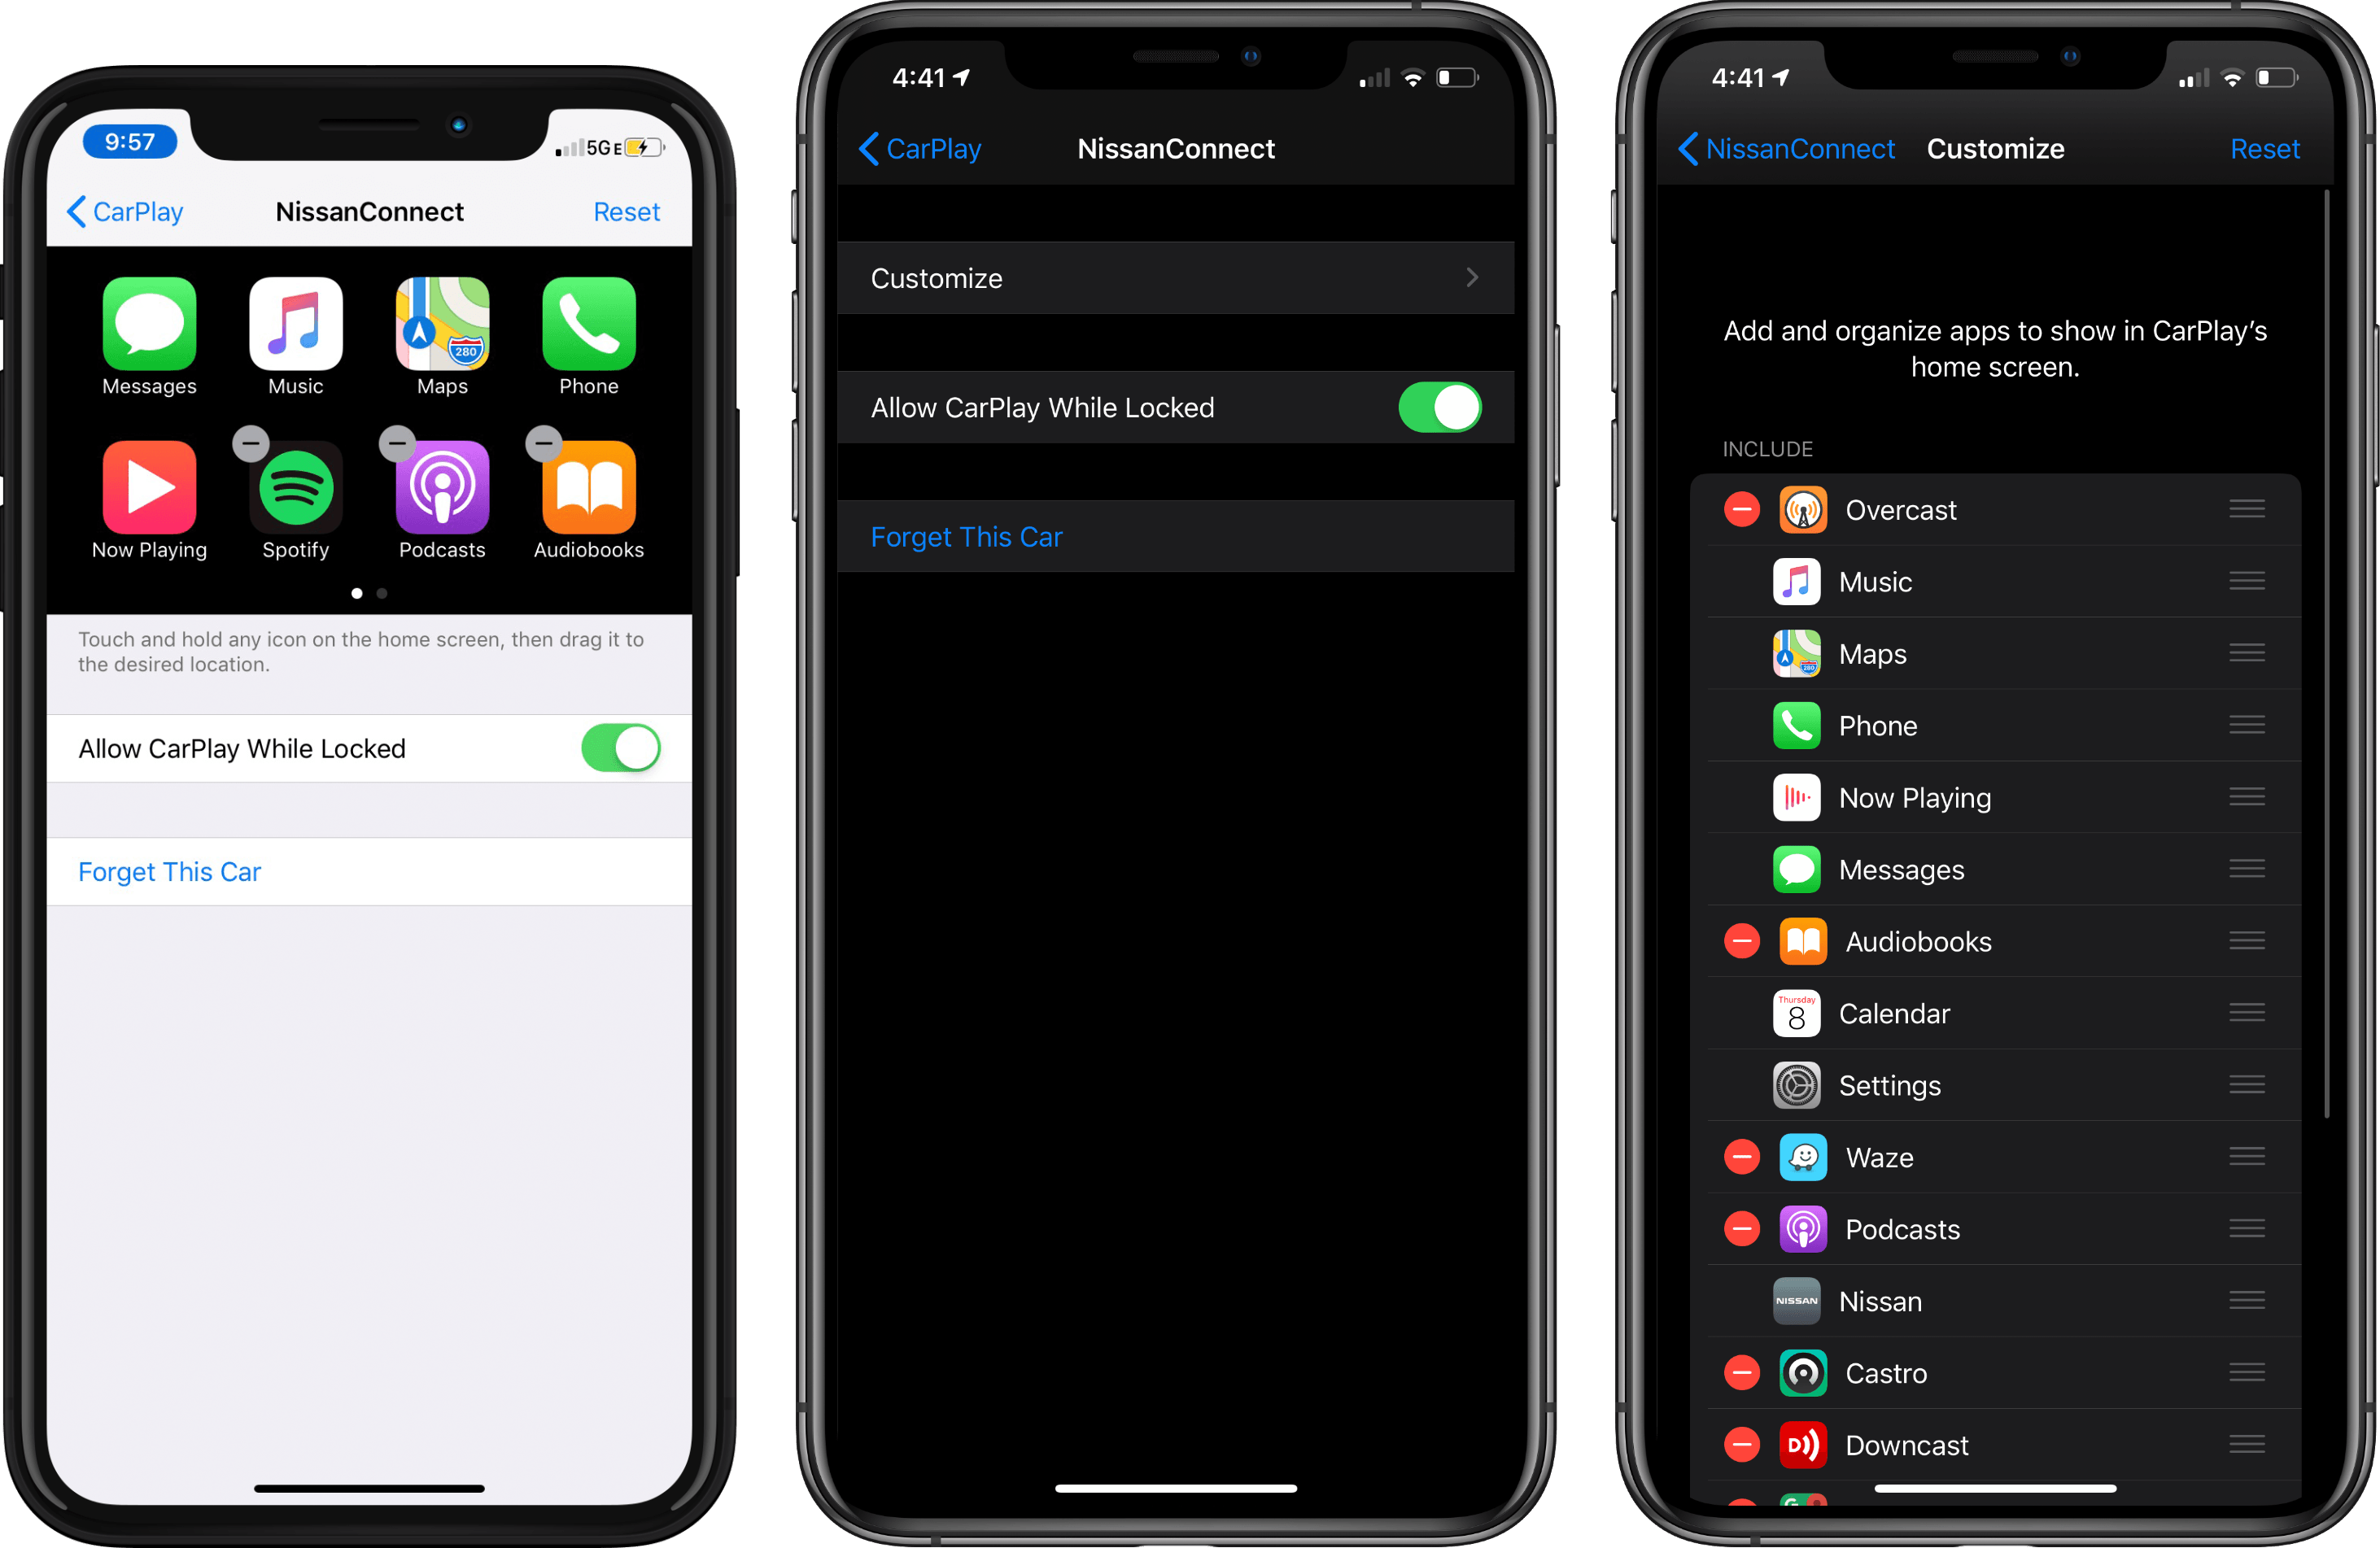 Setting up CarPlay in iOS 12 (left) and iOS 13 (middle and right).